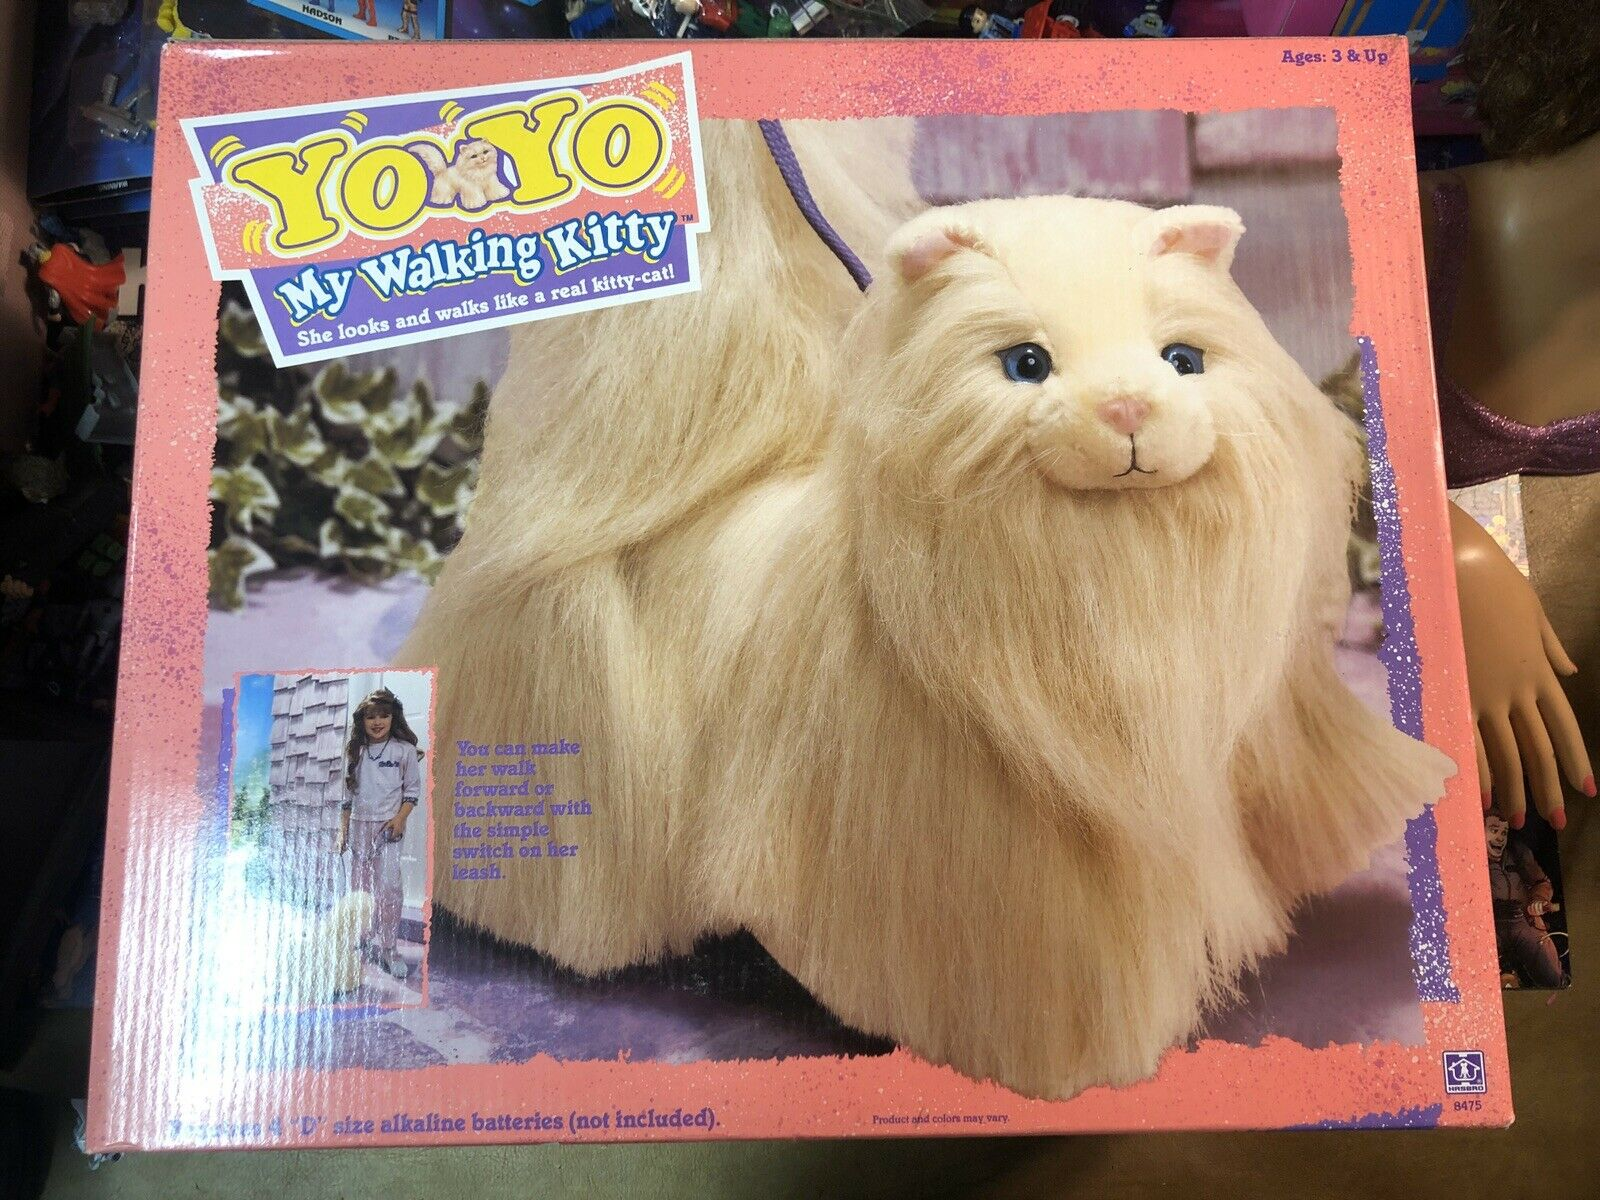 YoYo My Fußgänger Kitty Hasbro 1990 Meerled New in Box Warehaus Find